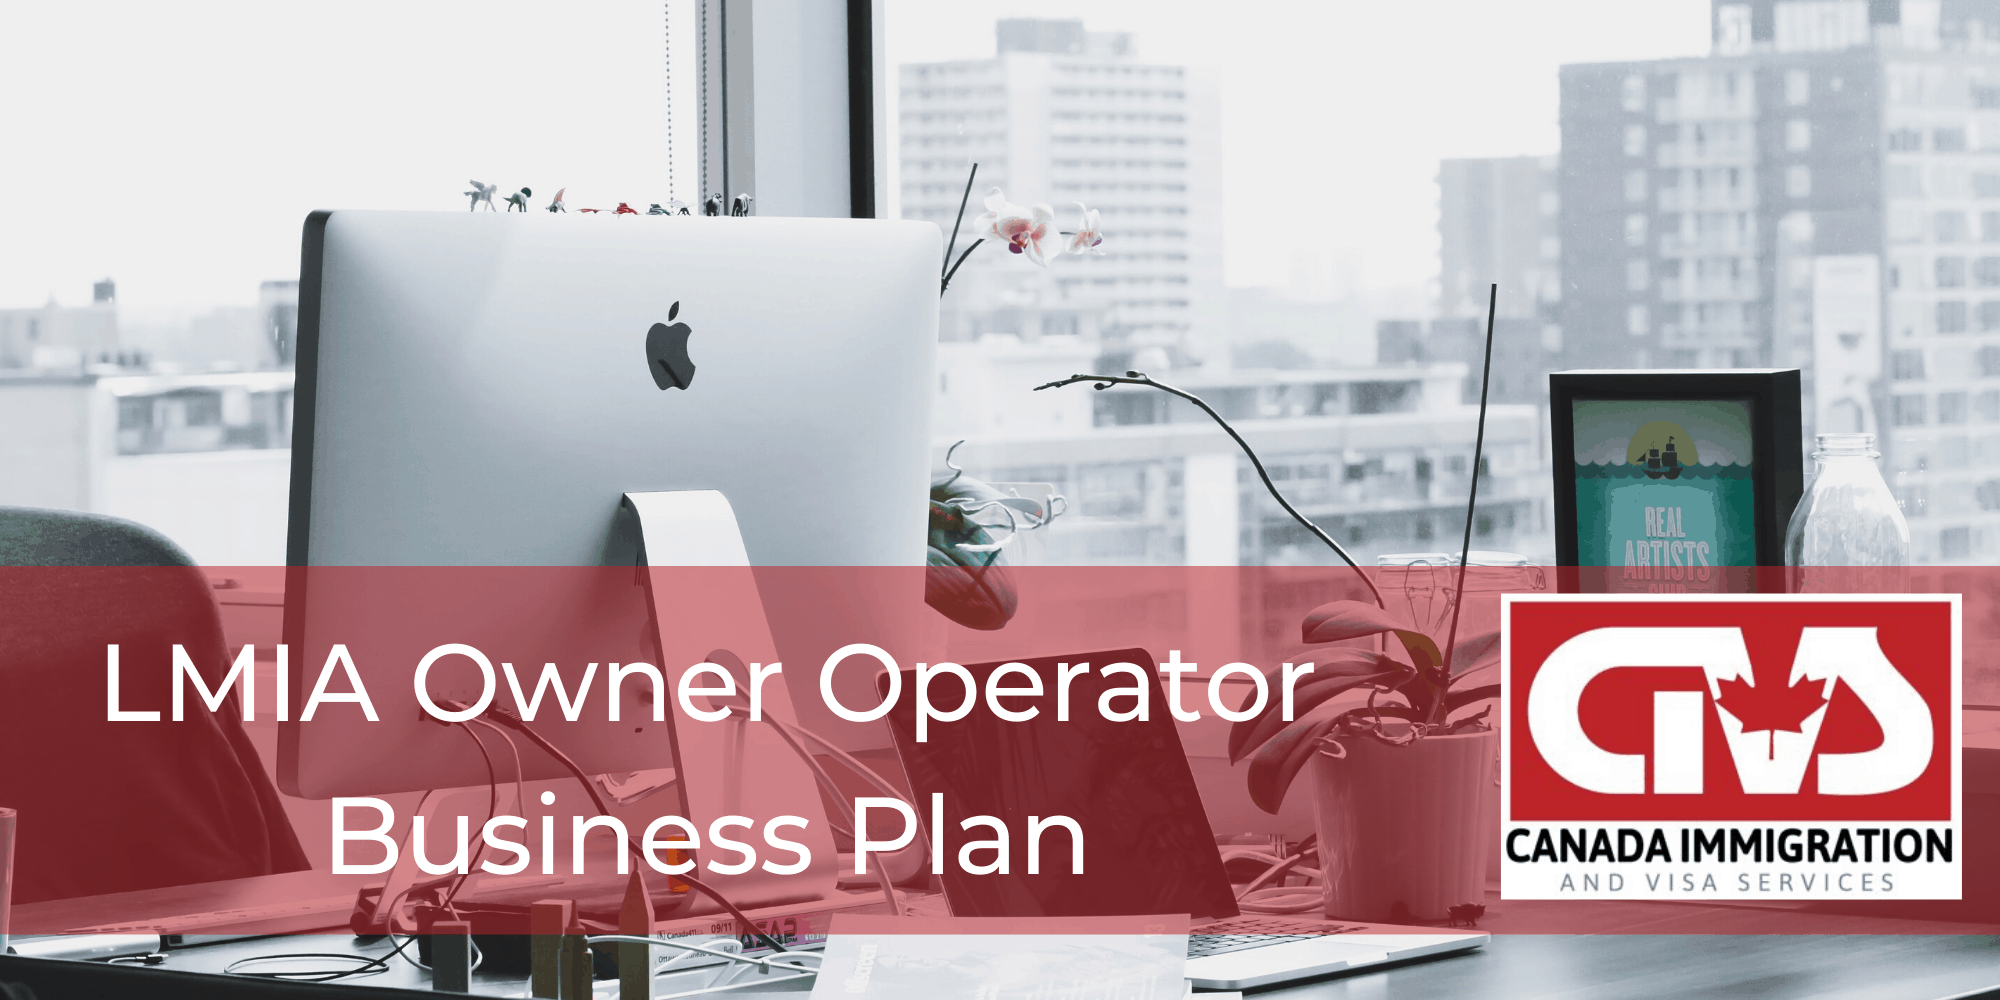 LMIA Owner Operator Business Plan